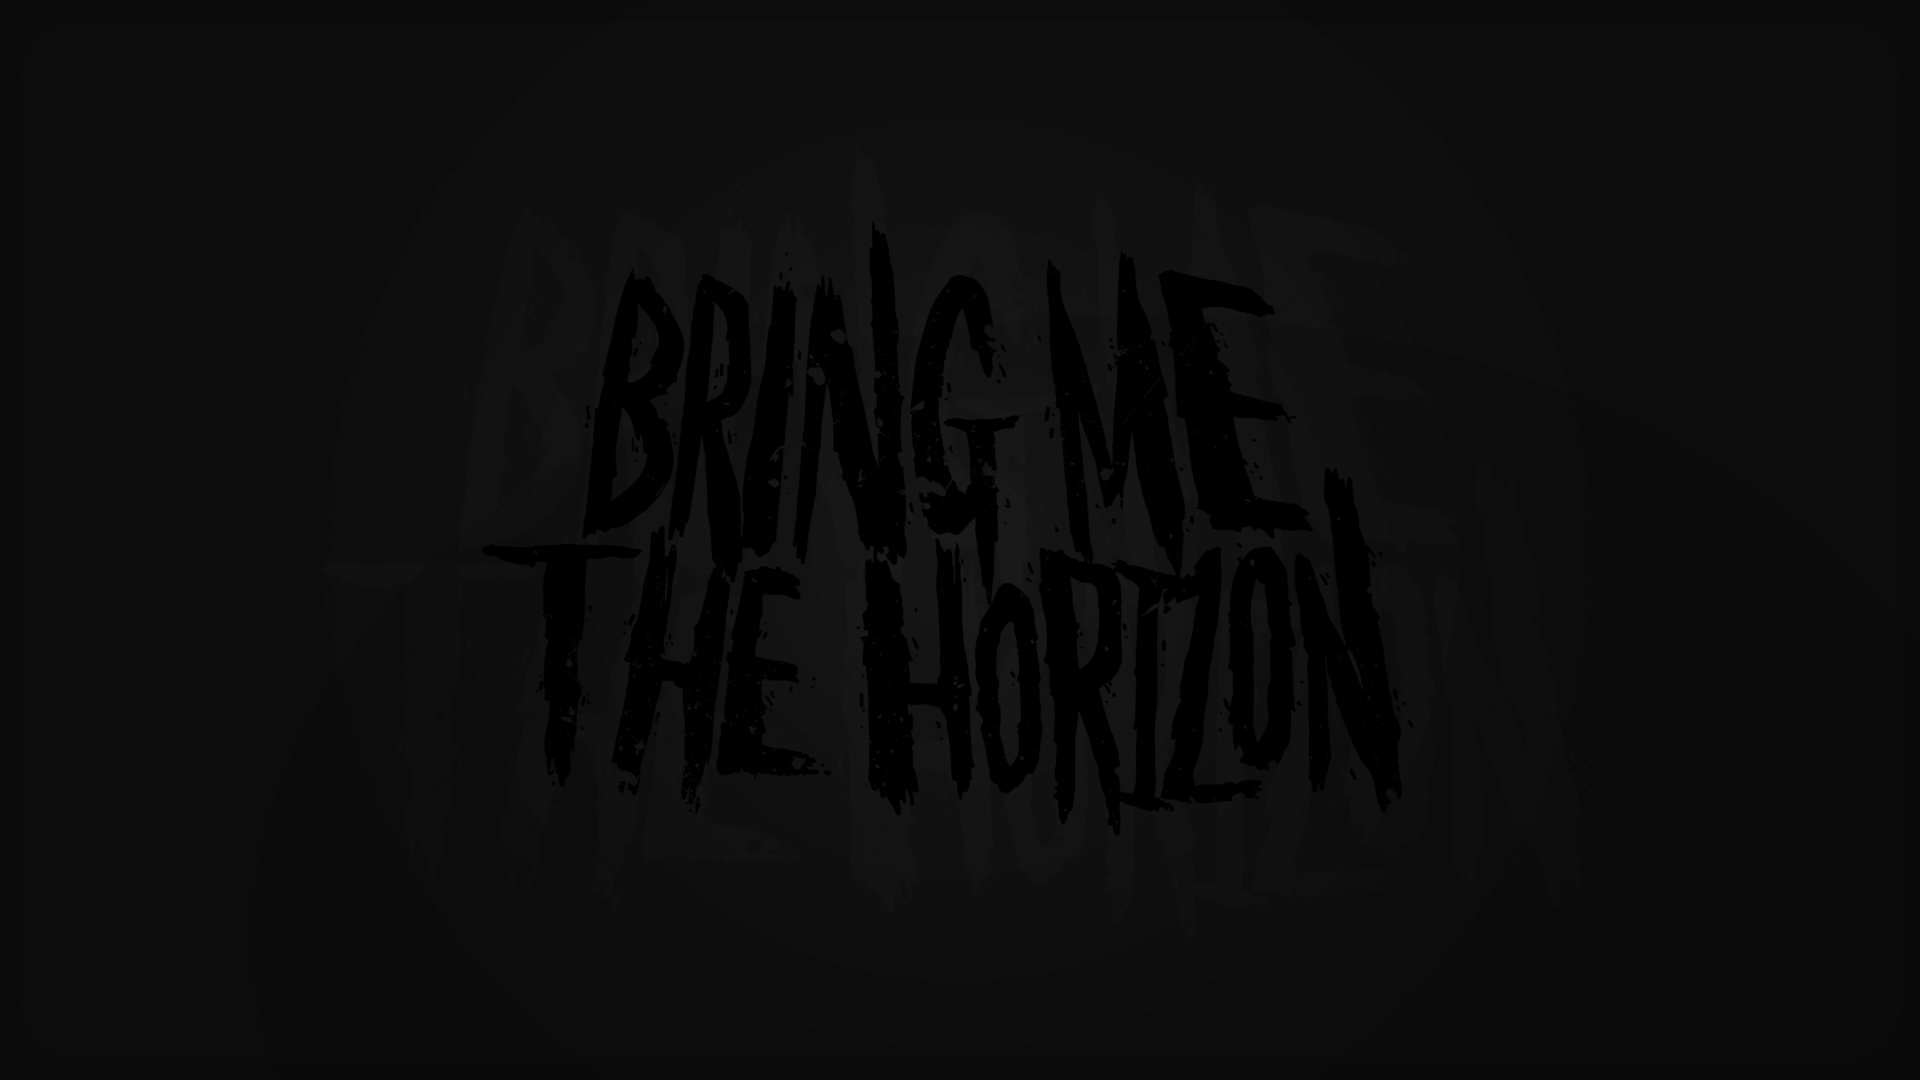 Bring Me The Horizon Logo Wallpaper Posted By Ethan Walker